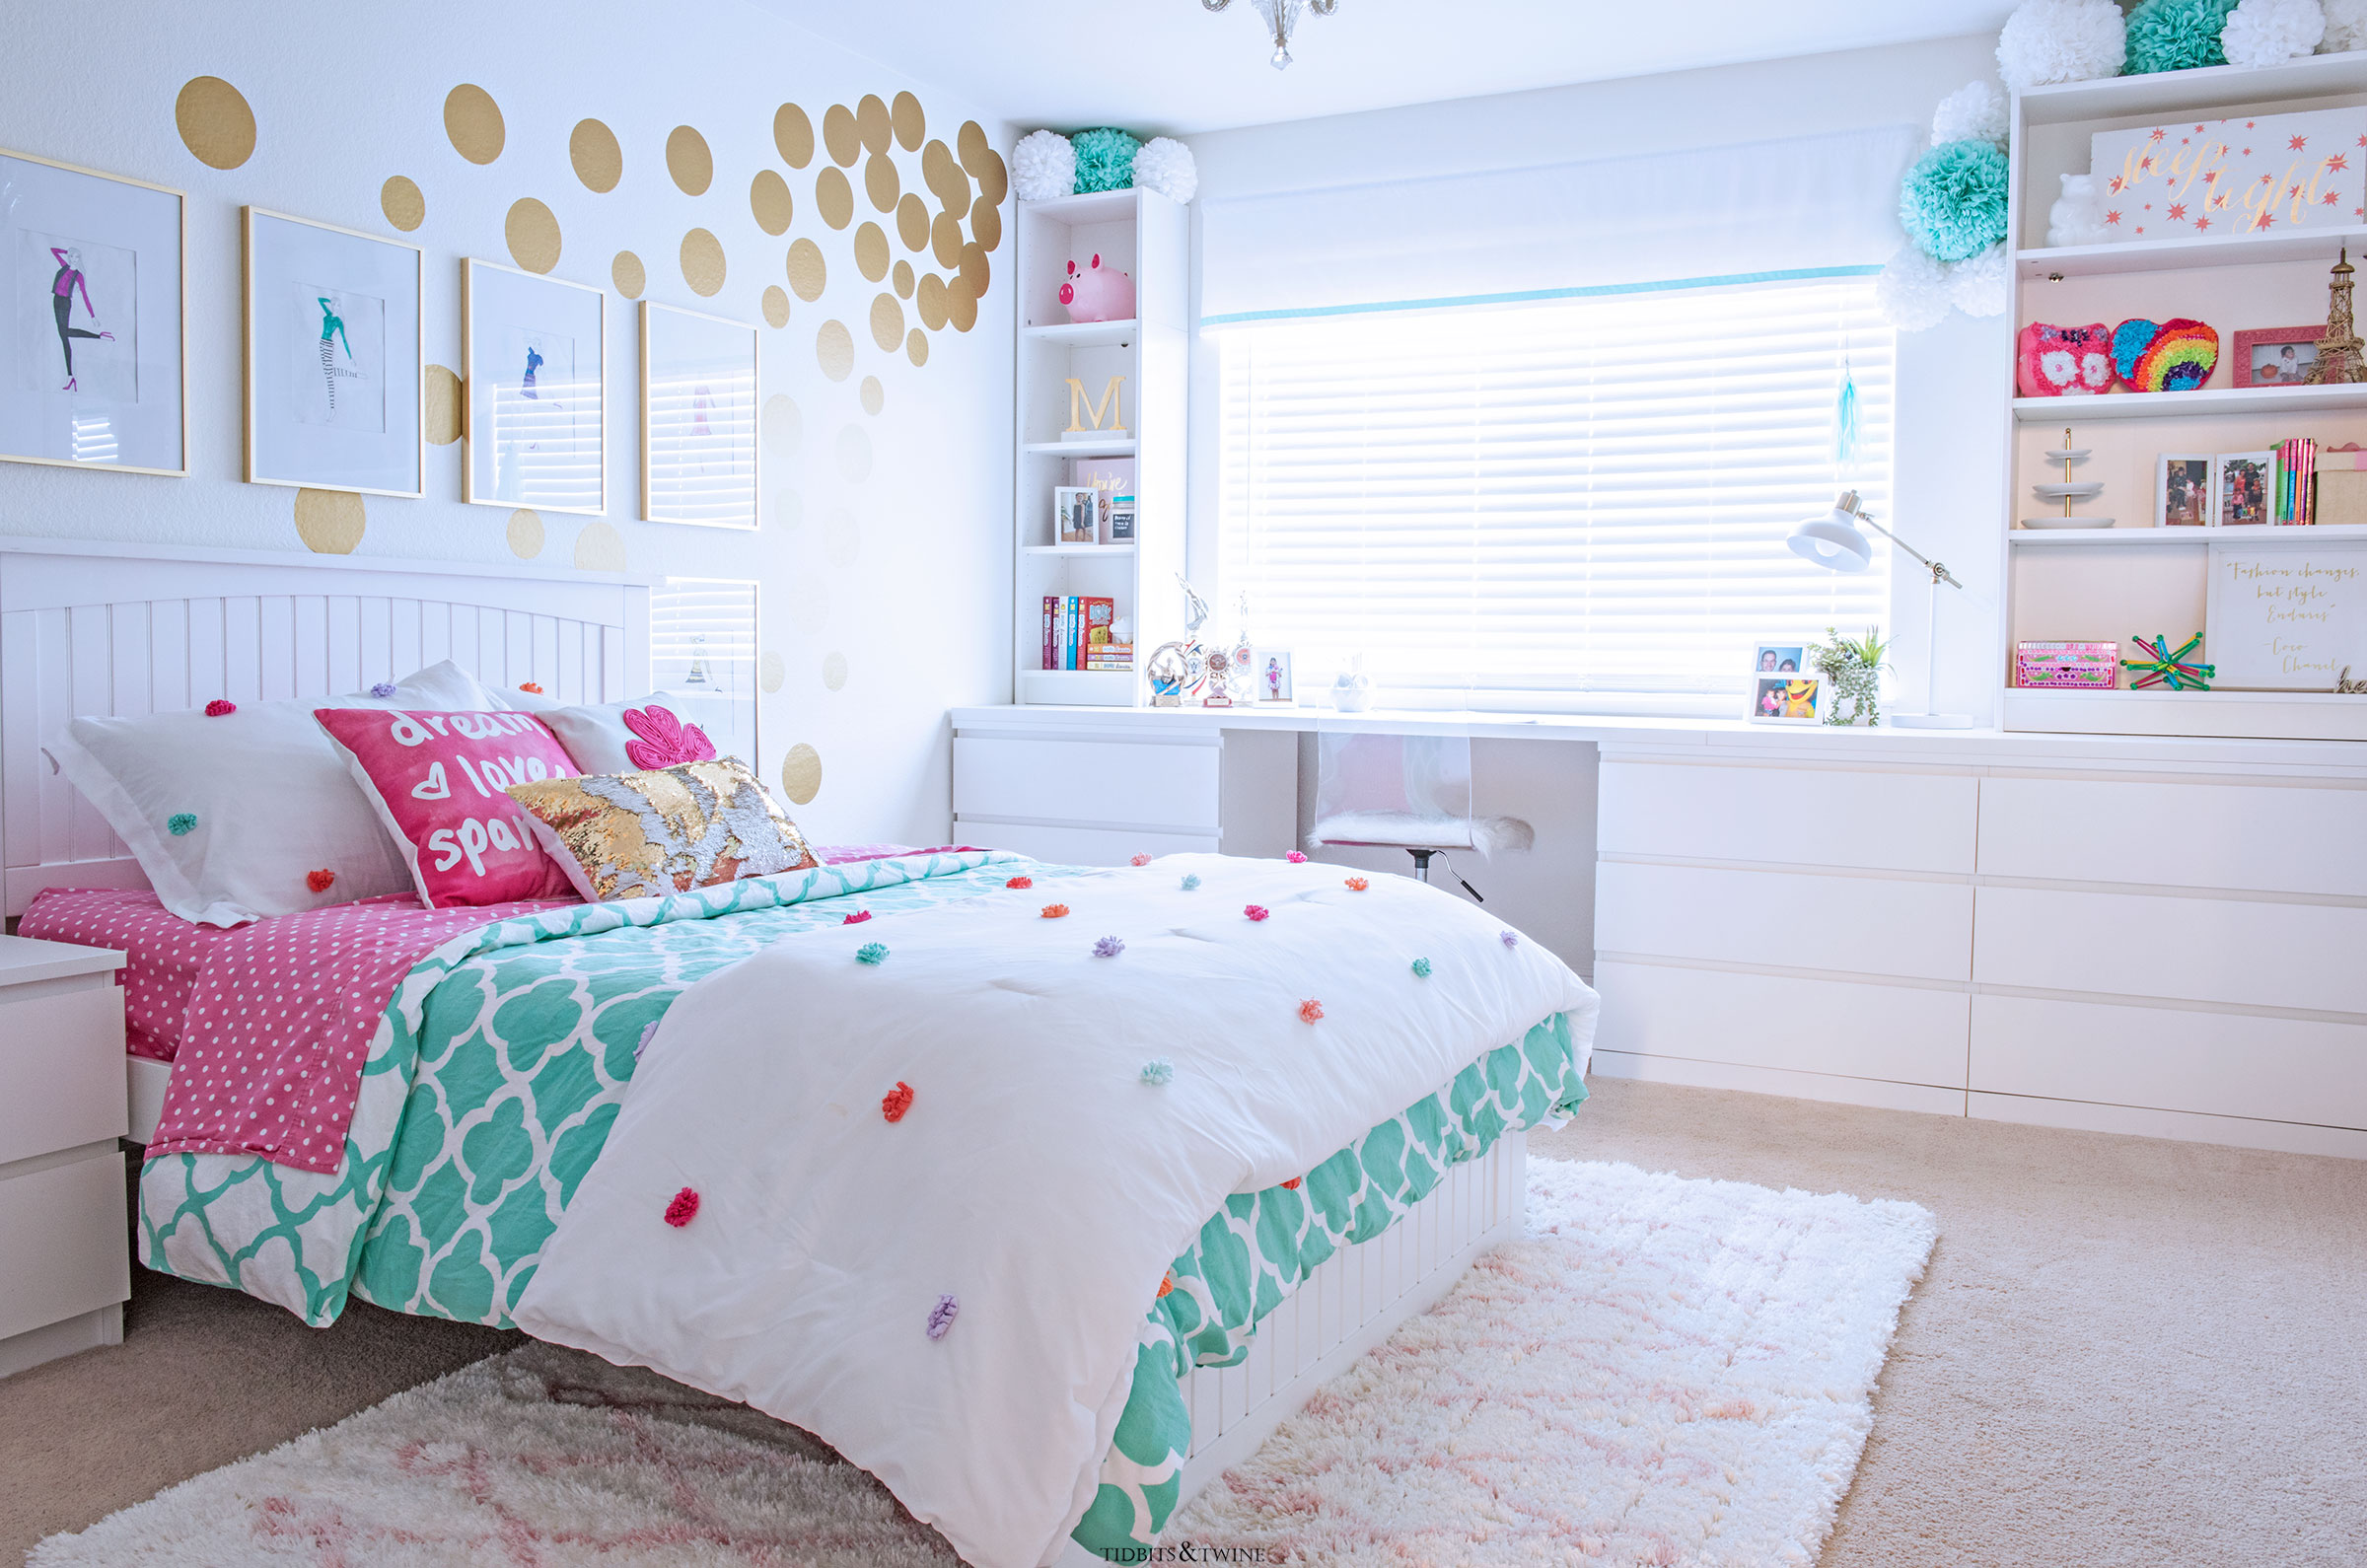 girls bedroom with IKEA hack built in desk and shelves white walls with gold polka dogs and turquoise and pink bedding